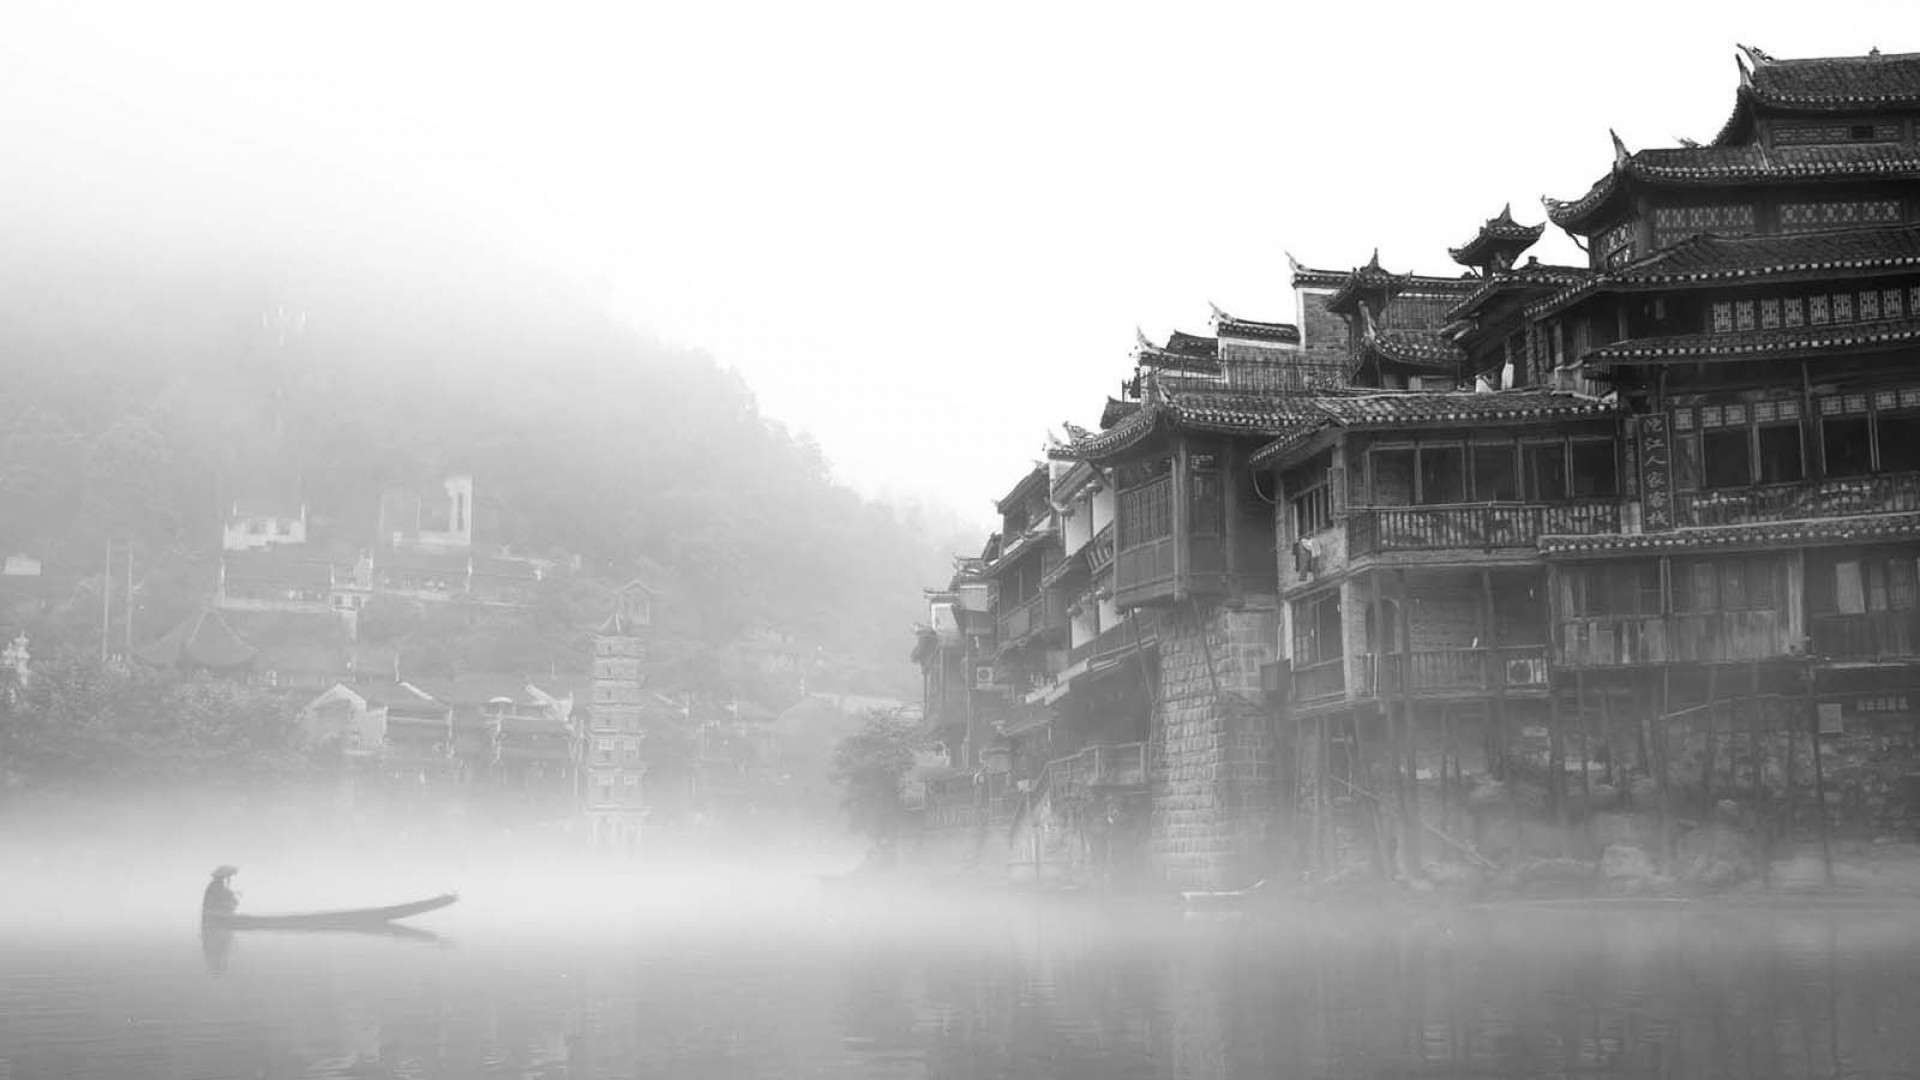 1920x1080 Ancient Chinese town `✿.¸¸.Ƹ✿Ʒ.¸¸.